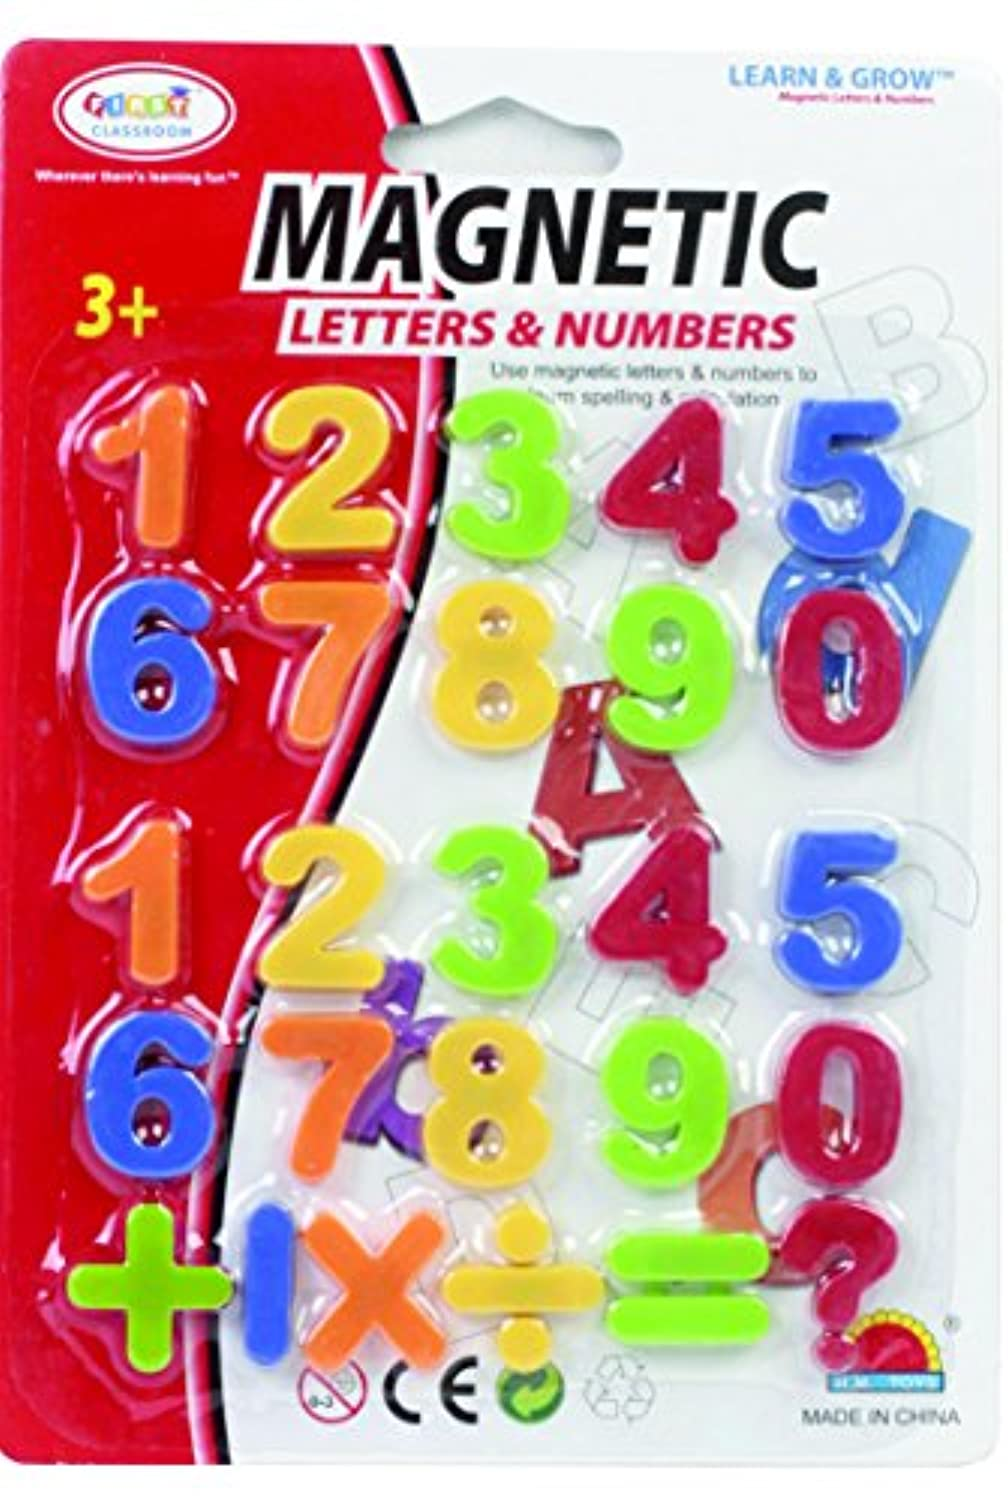 [ファーストクラスルーム]First Classroom Magnetic Numbers & Symbols in a Blister Card, 1 1171c [並行輸入品]